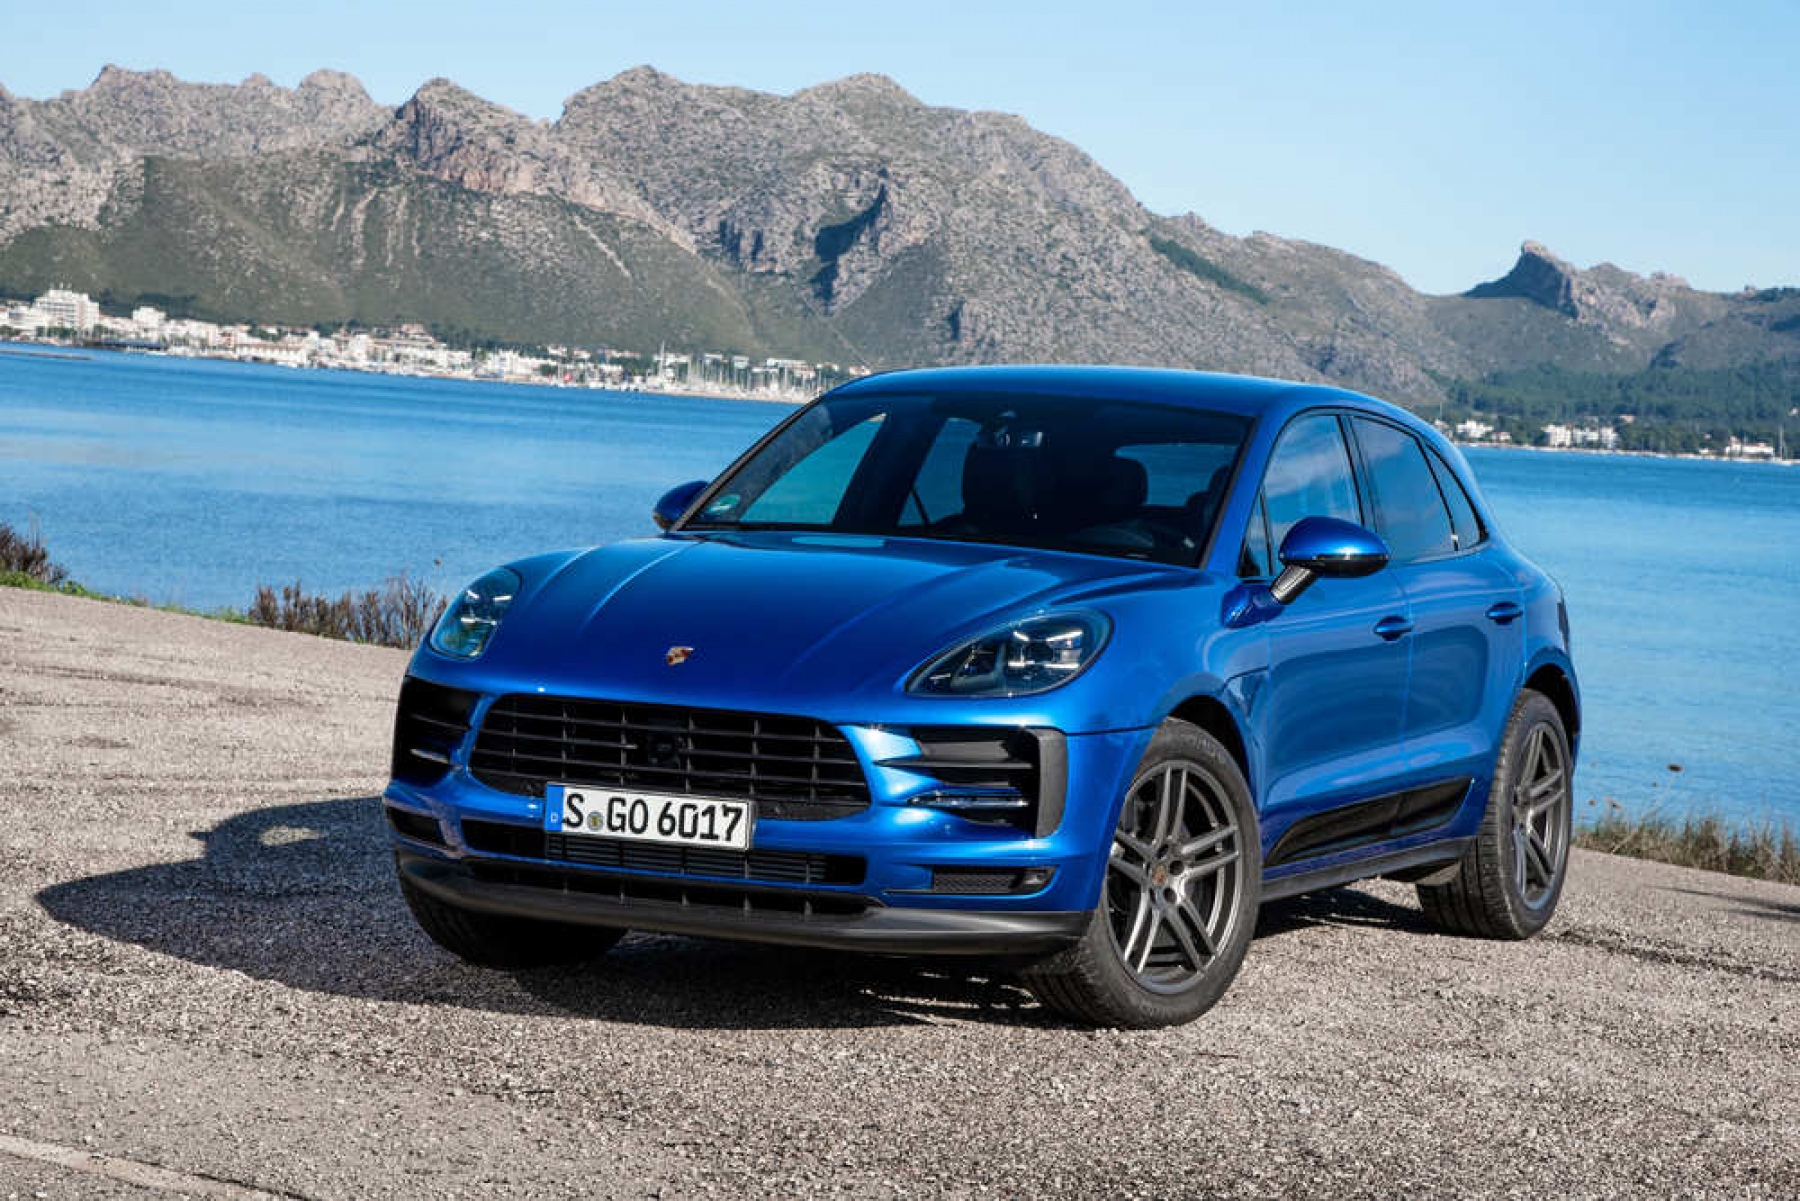 Macan Sapphire Blue Metallic The New Macan